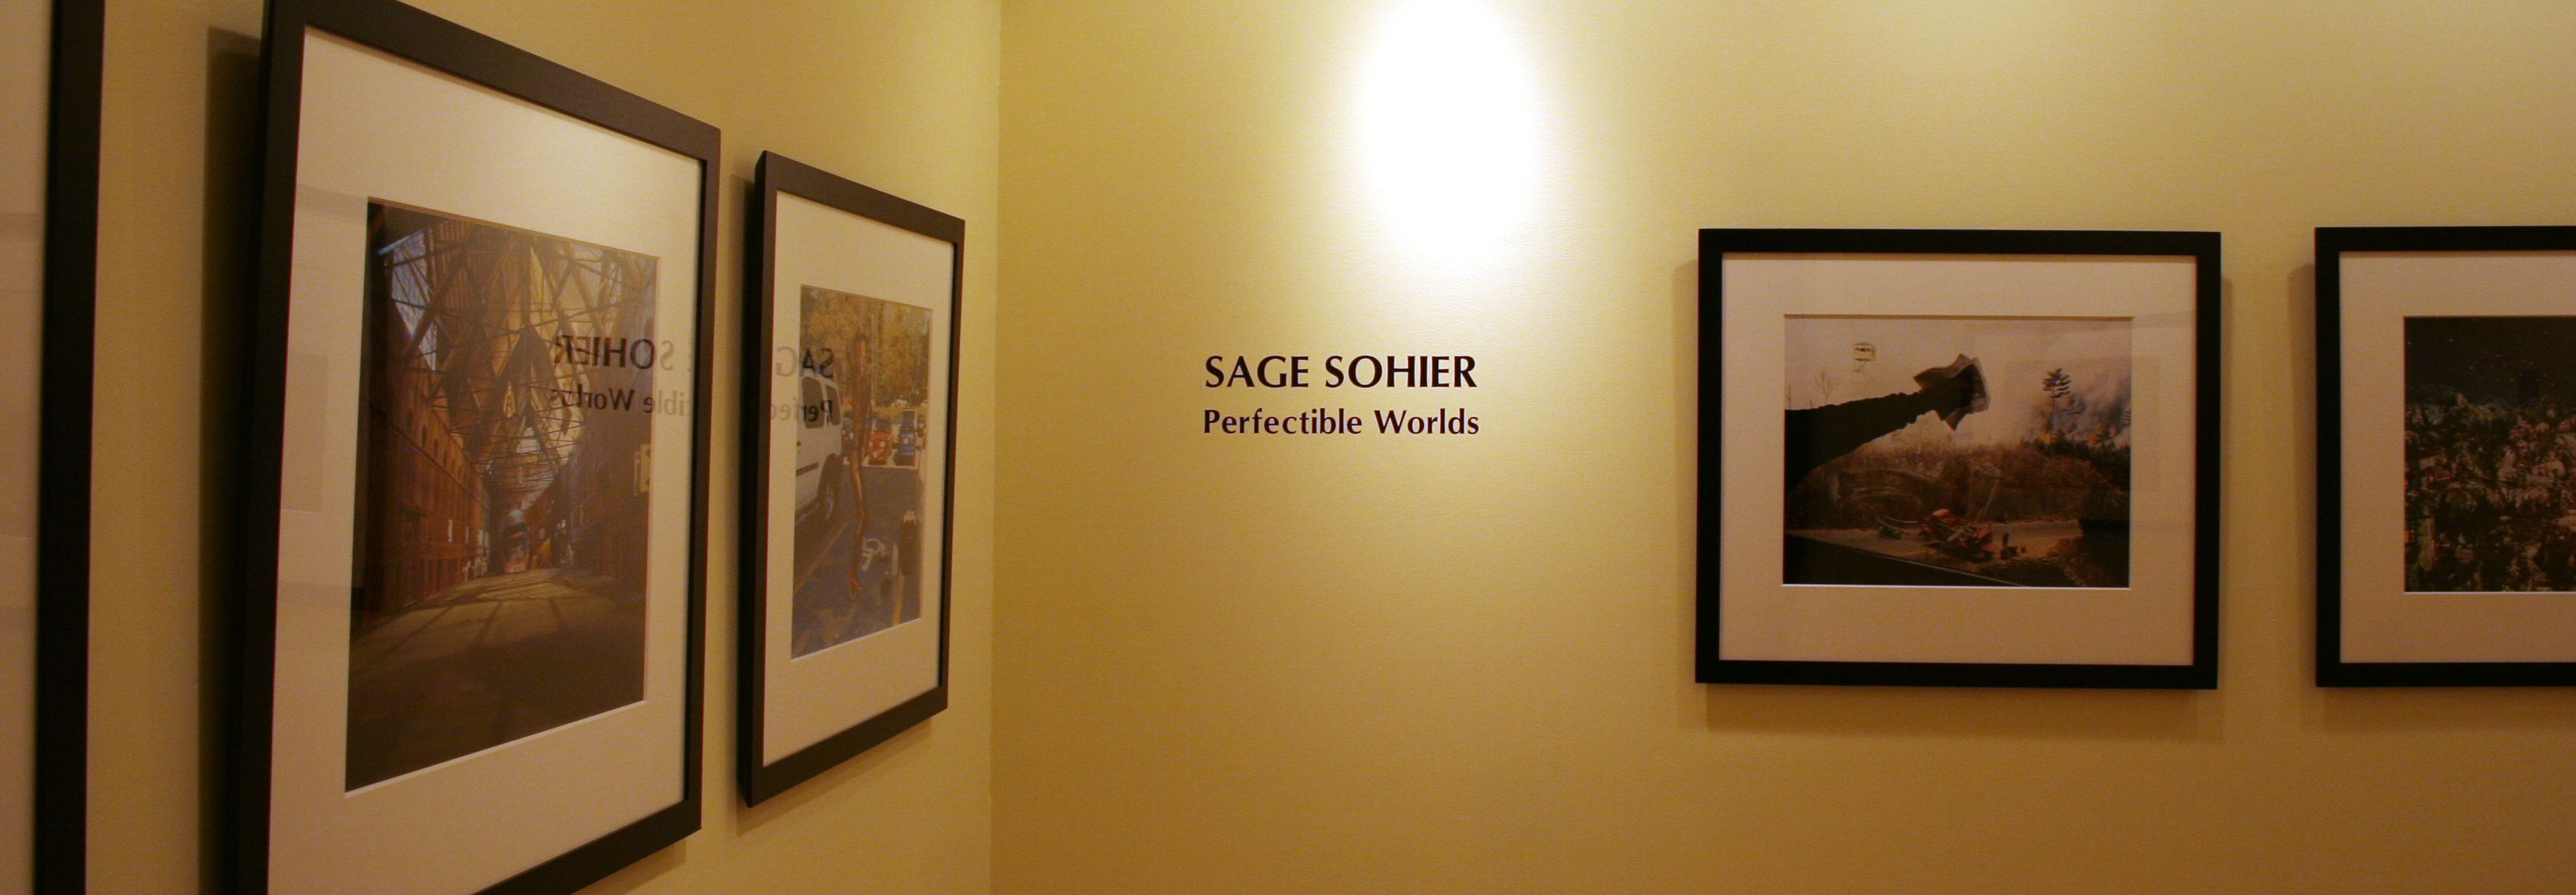 "Sage Sohier, ""Perfectible Worlds"", September 2 - October 29, 2006"